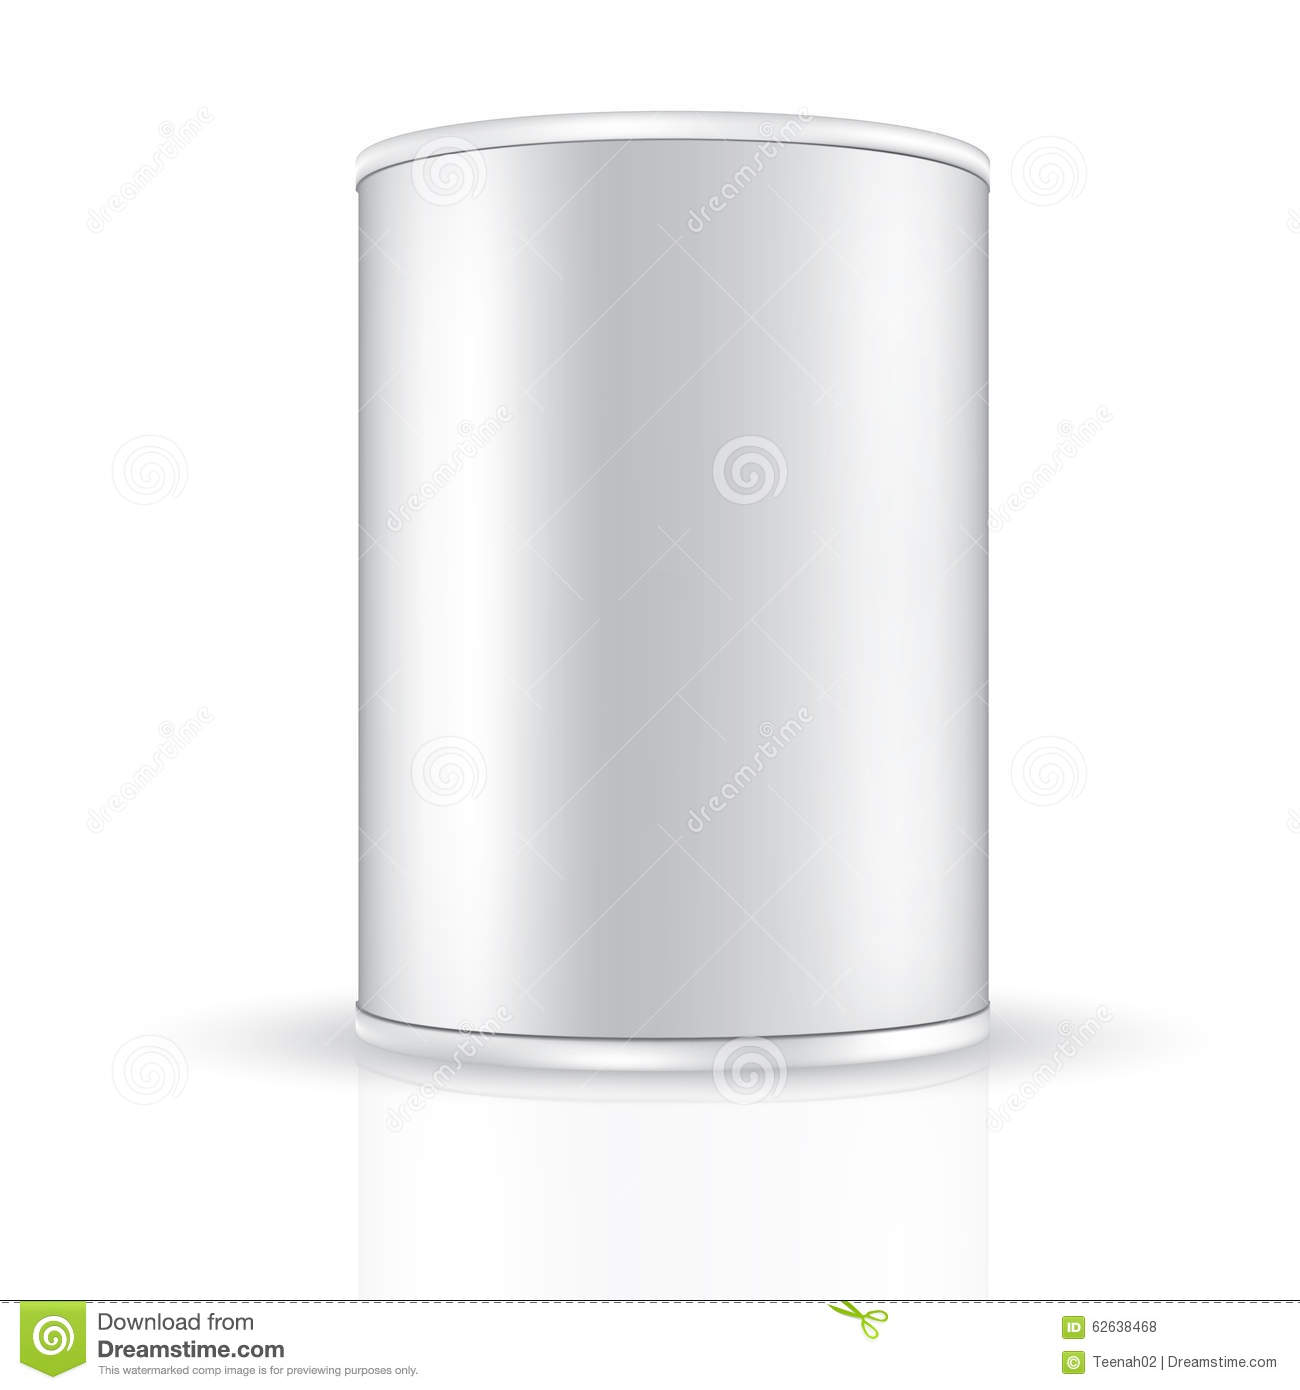 Aluminum tin round container with white band on top and bottom